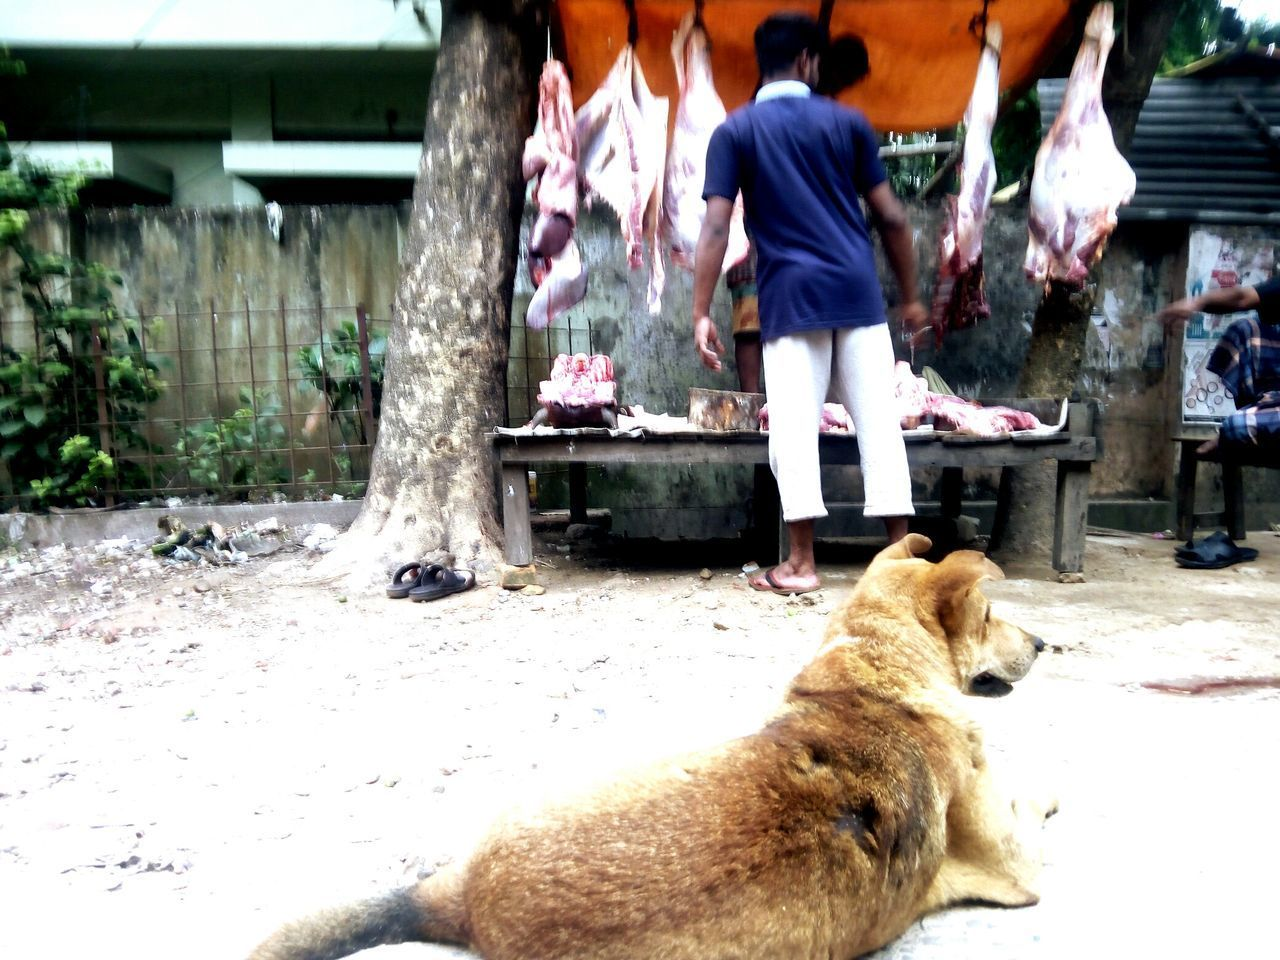 waiting Dog One Animal Sitting Meat! Meat! Meat! Meal Dog❤ Hungry Animals Hungry Dog Red Meat Streat Dog, Domestic Animals Roadside Dog The Street Photographer - 2017 EyeEm Awards